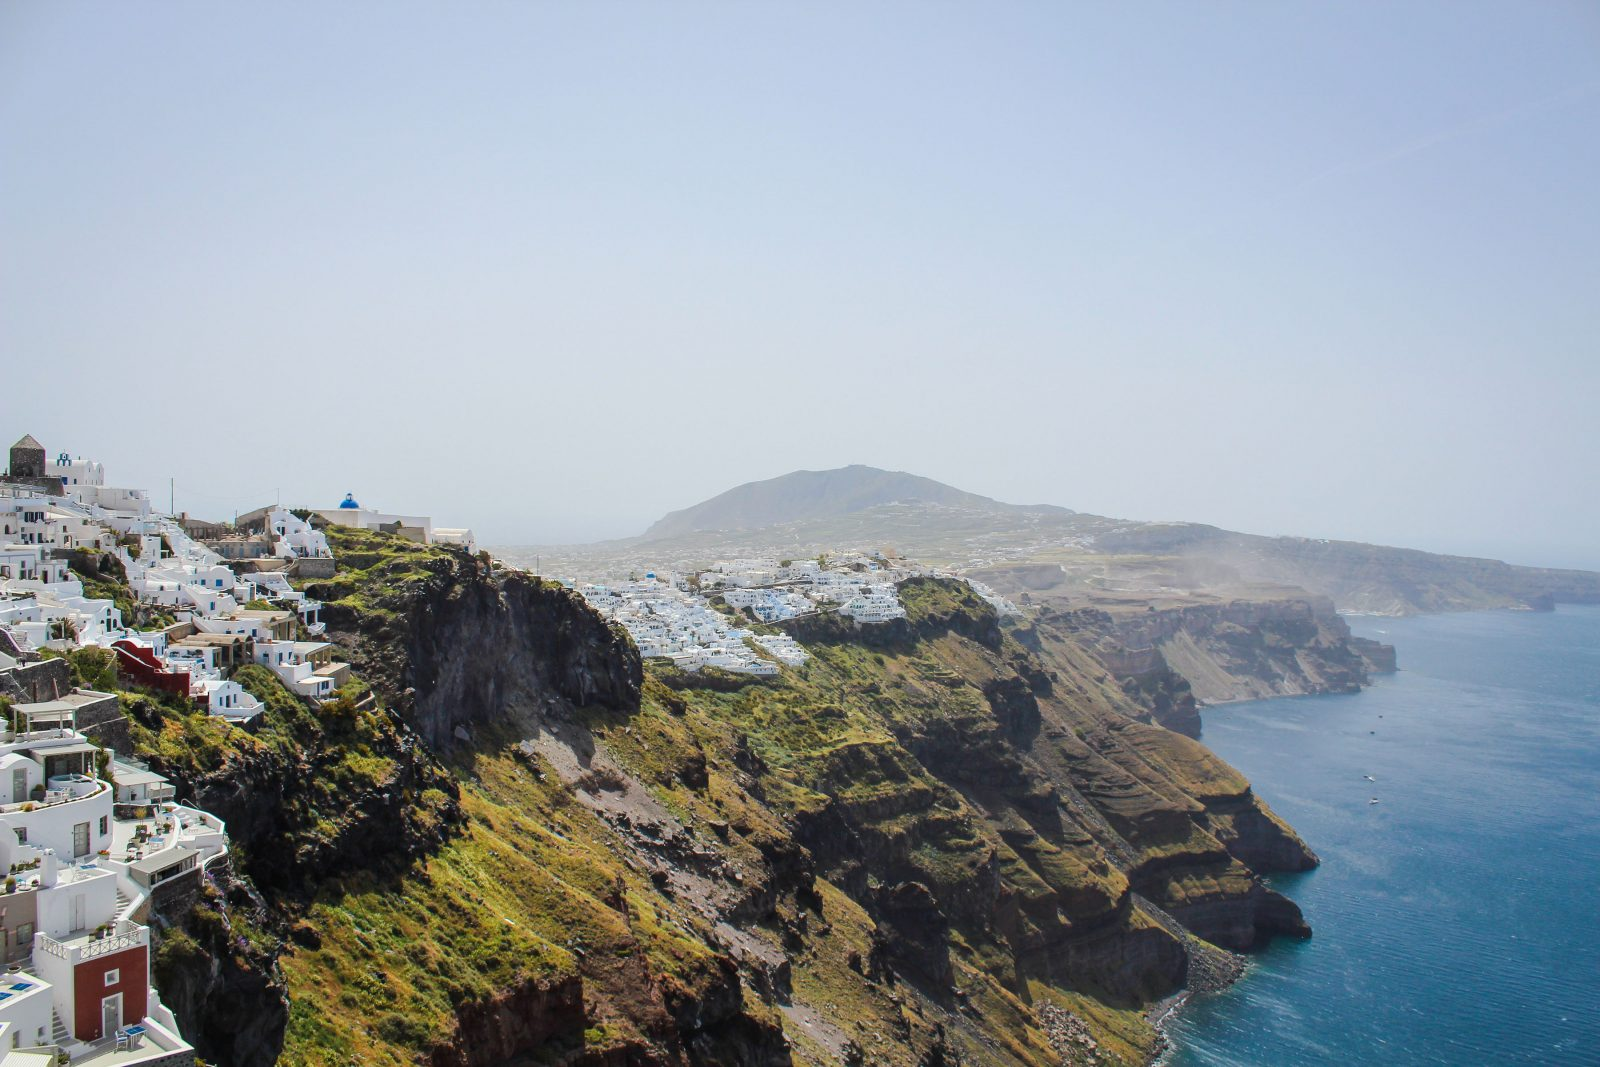 Santorini white-washed cliffs on the agean sea are the spring getaway location